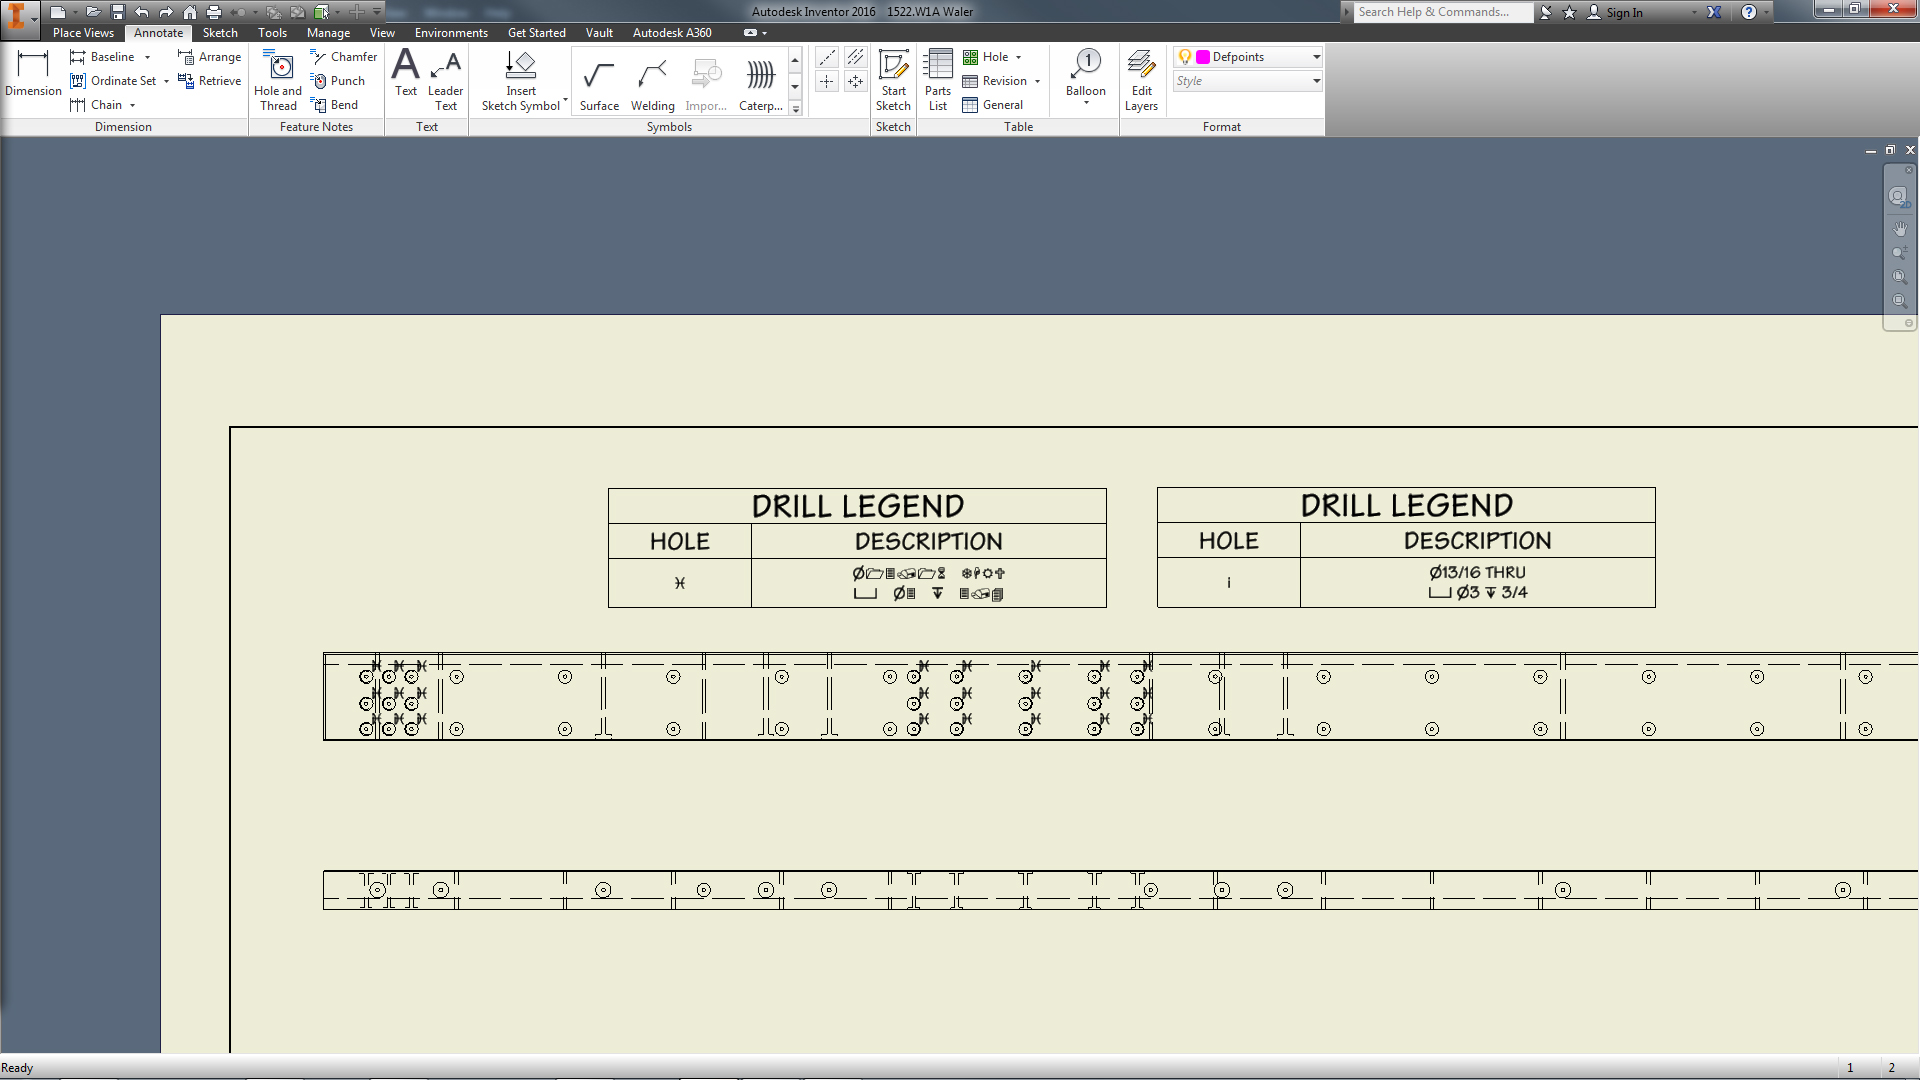 Wingdings Font In First Column Of Hole Table Autodesk Community